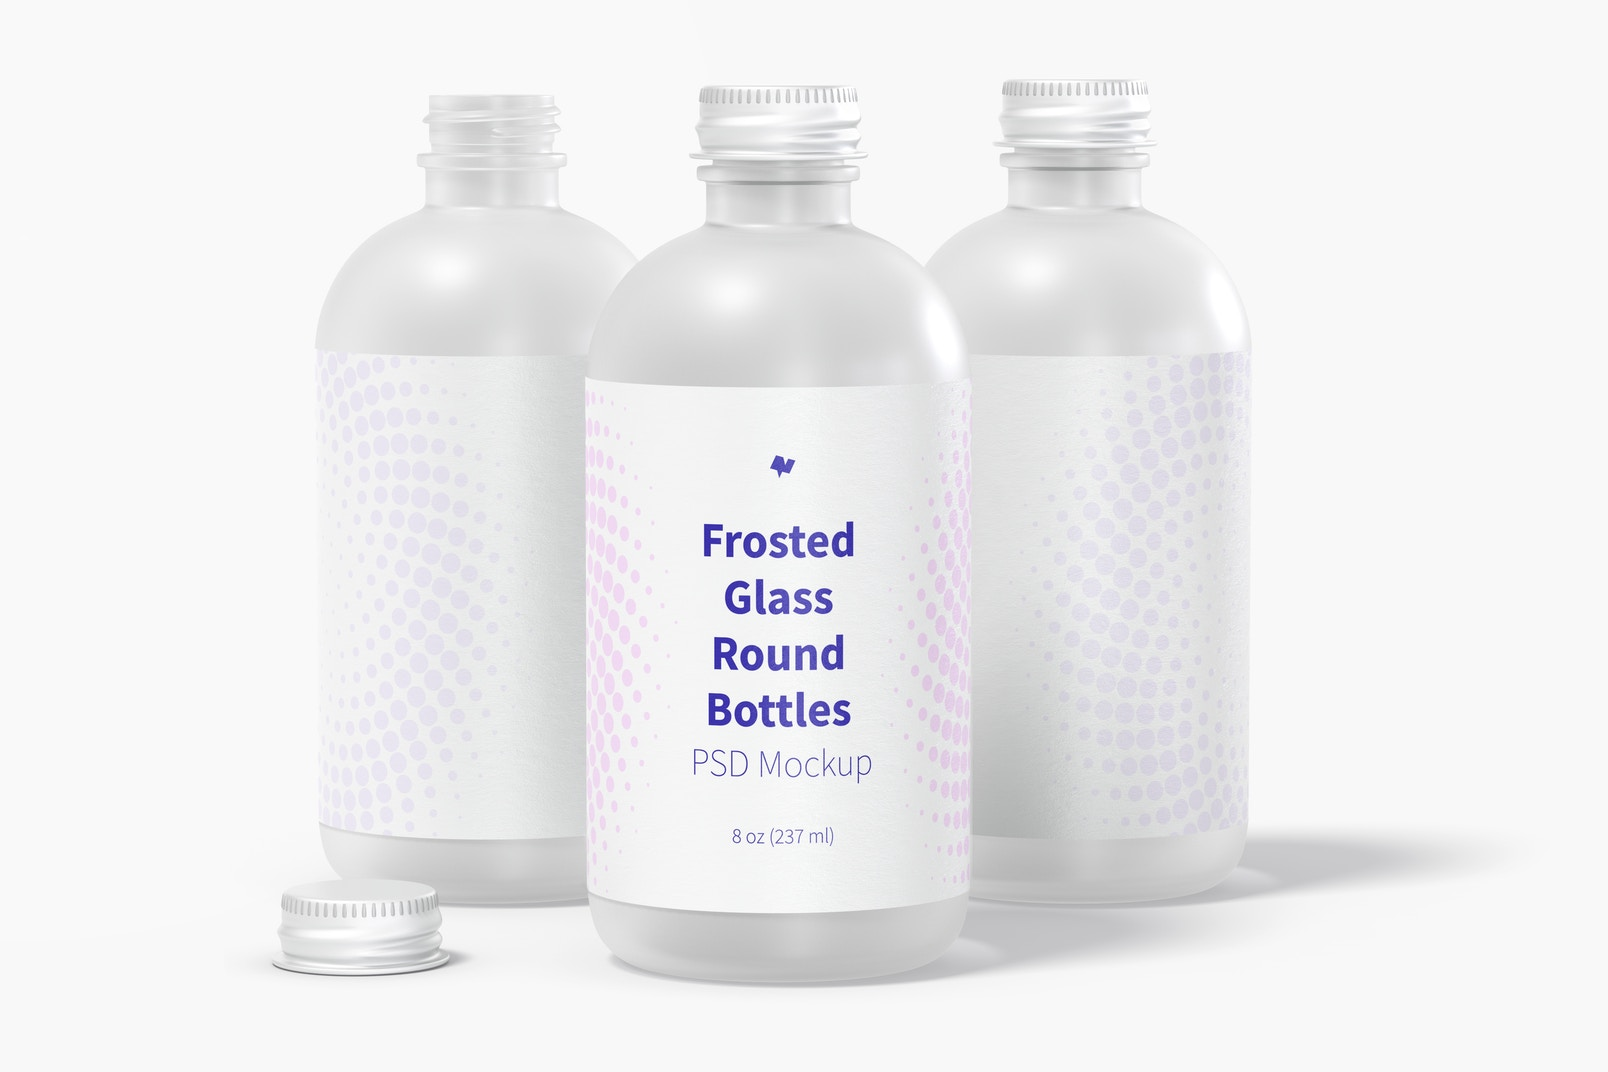 8 oz Frosted Glass Round Bottles Mockup, Front View